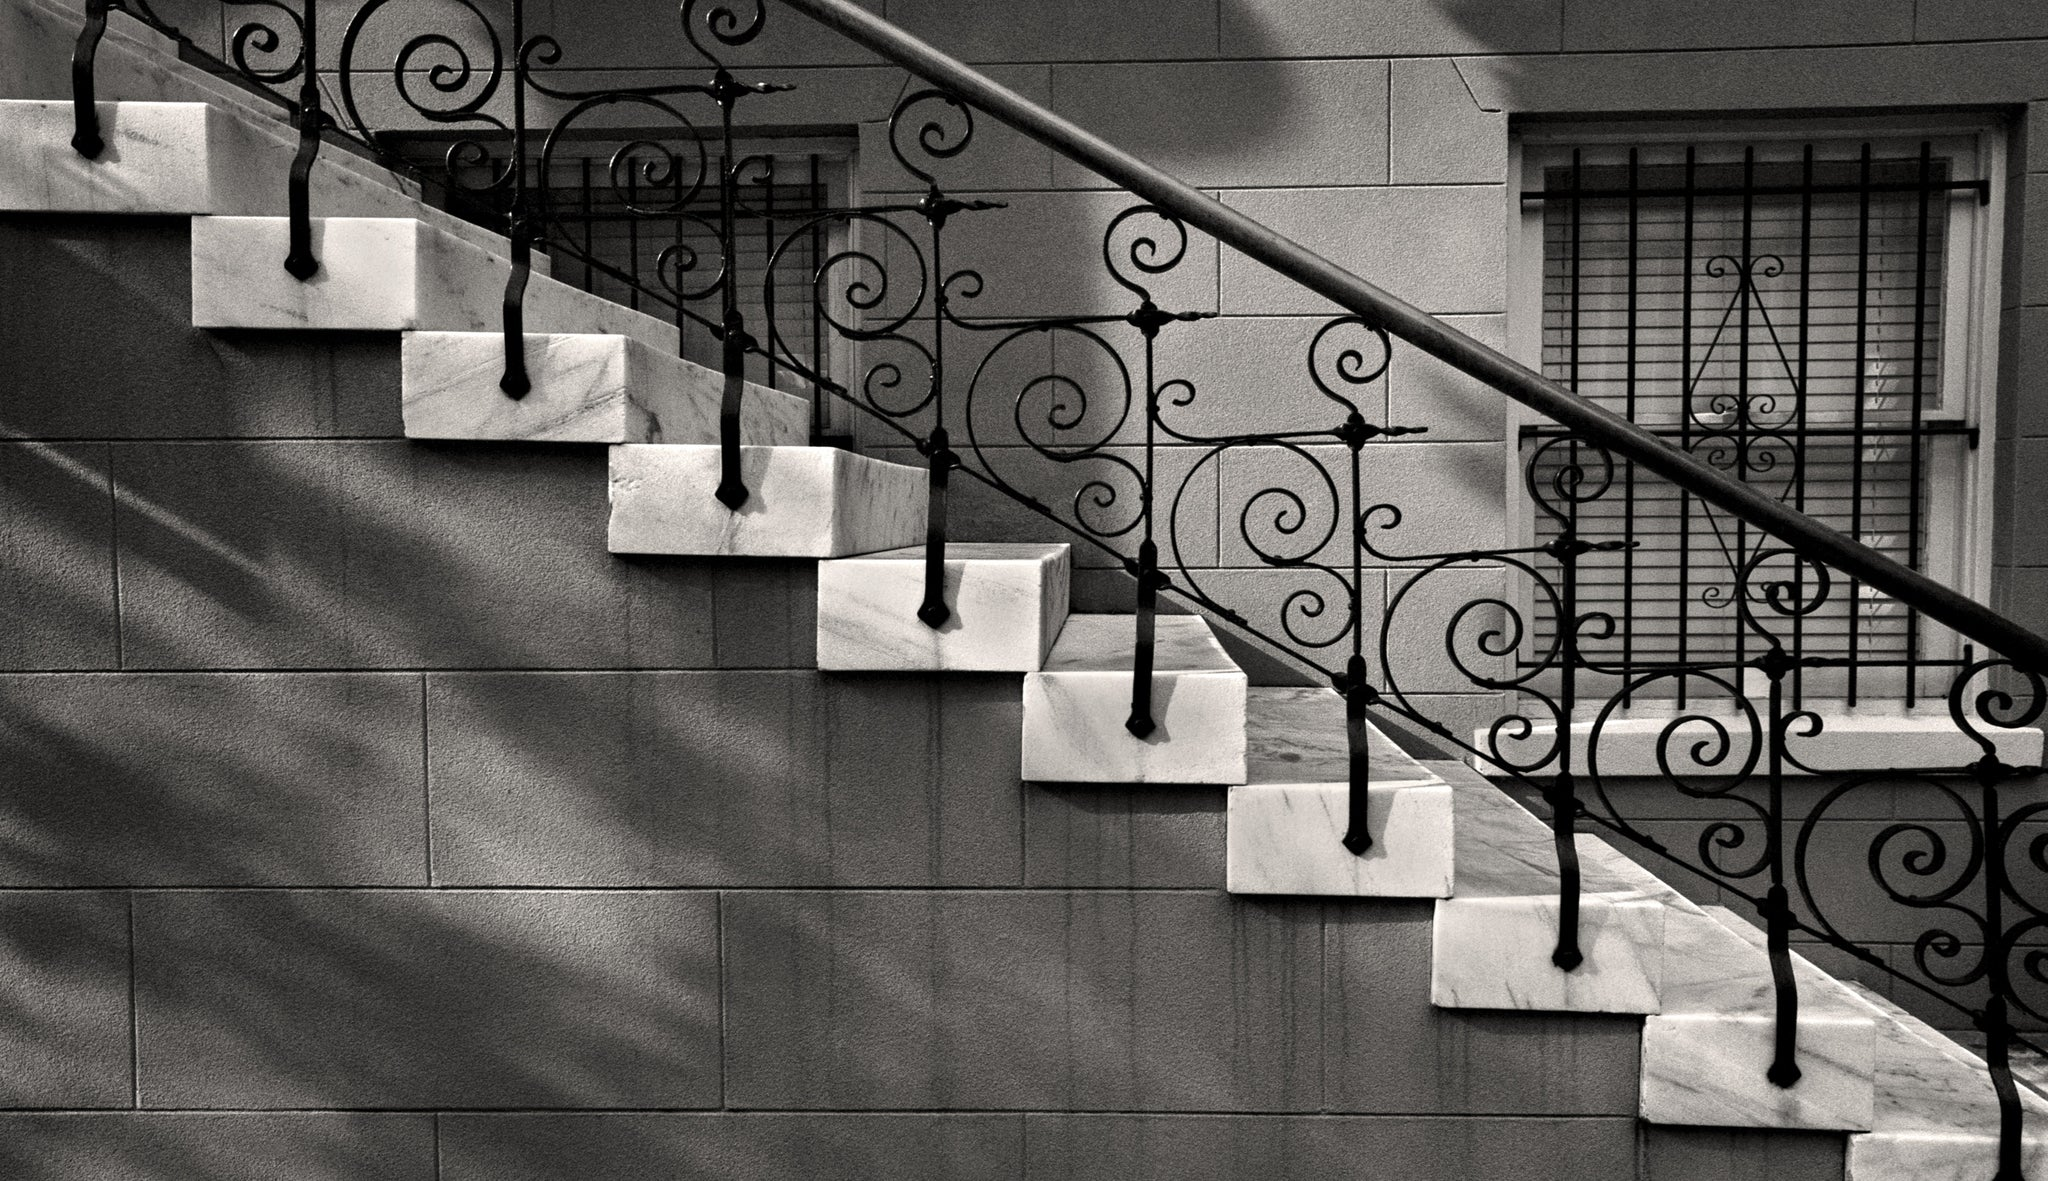 Iron Marble Steps Savannah Georgia Black And White Photograph Fine Art Black And White Photography By The Andy Moine Company